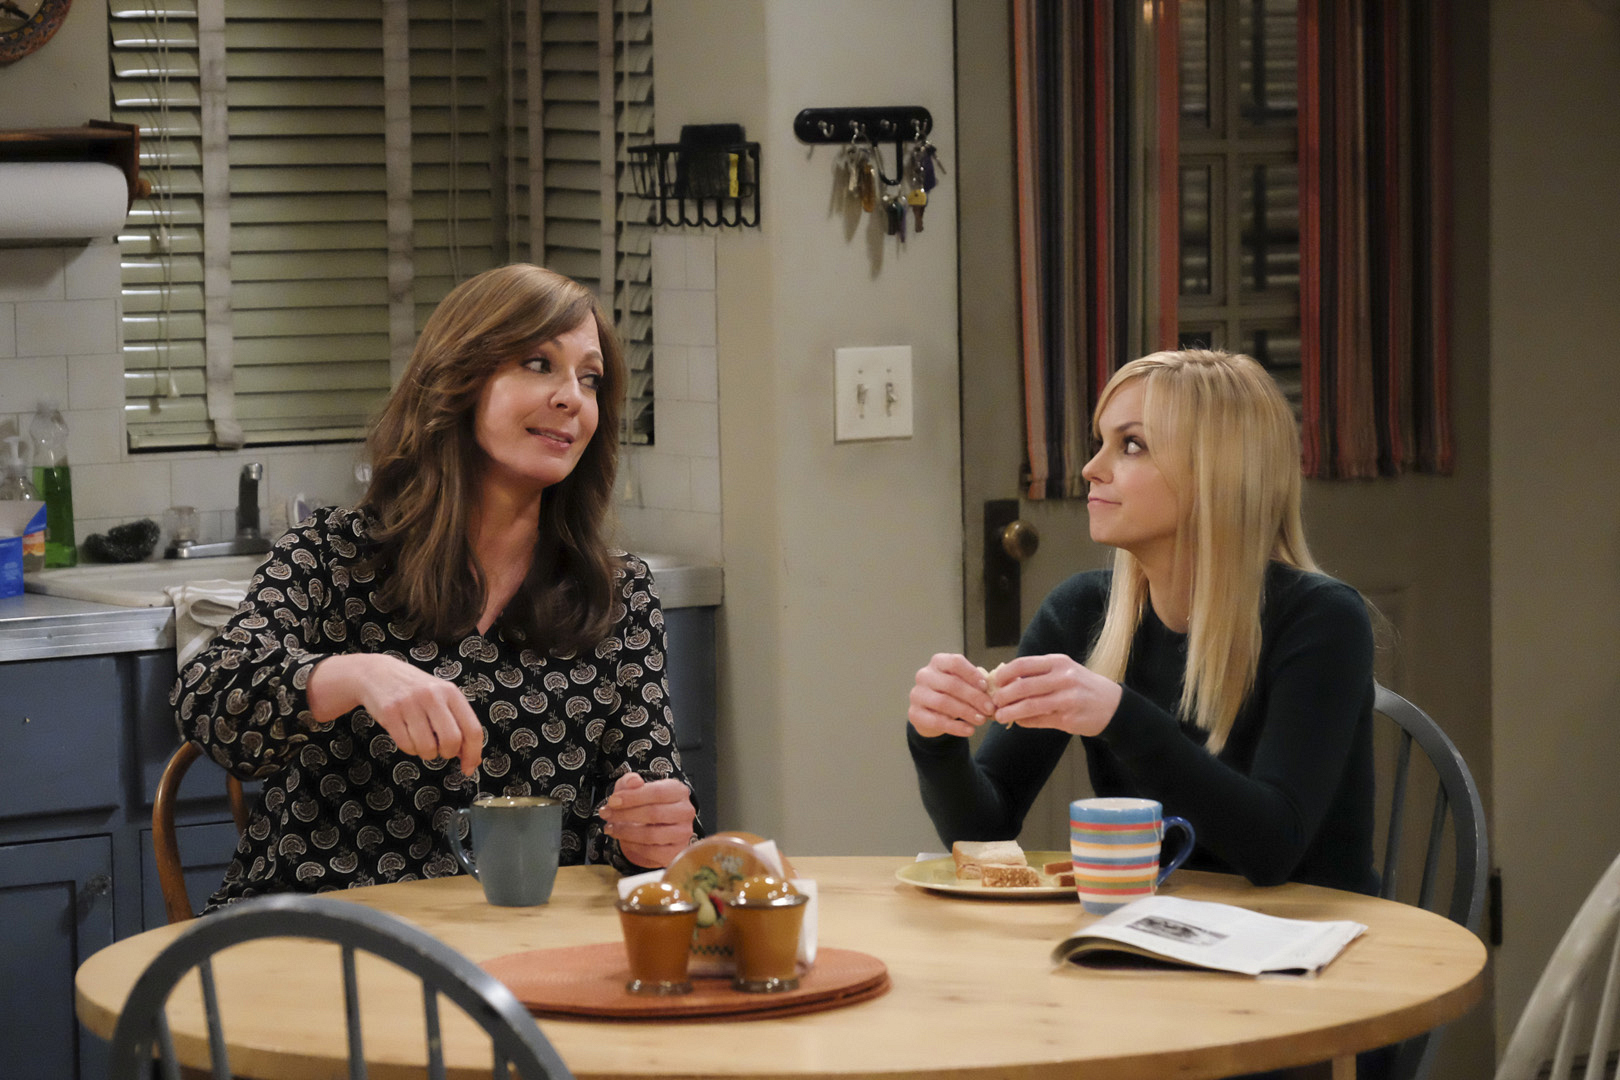 Bonnie and Christy experience a breakthrough and are able to put their differences aside.